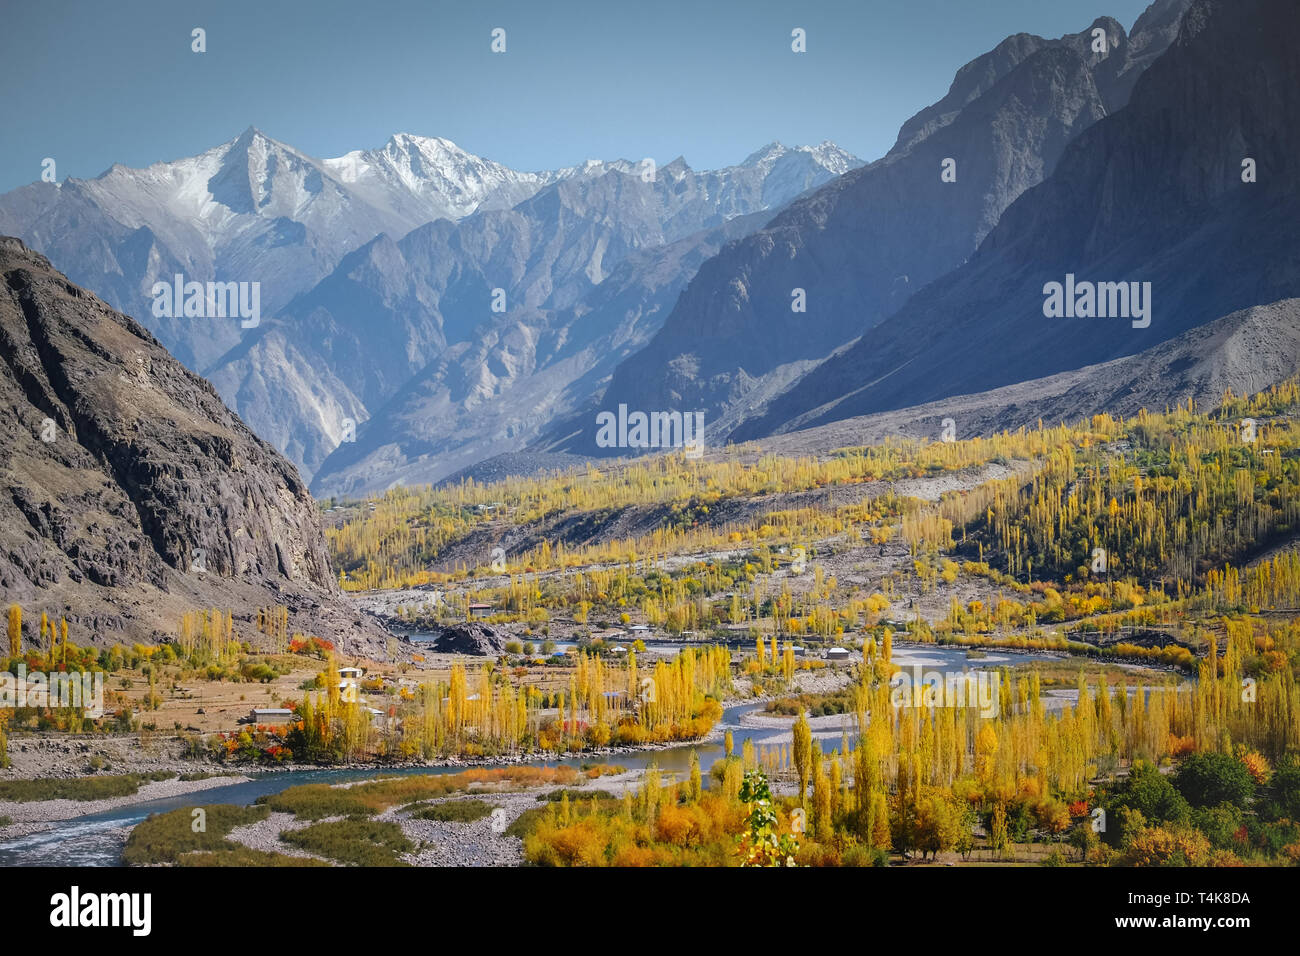 Landscape view of river flowing through forest in Gupis with mountain range in the background. Ghizer in autumn. Gilgit Baltistan, Pakistan. - Stock Image